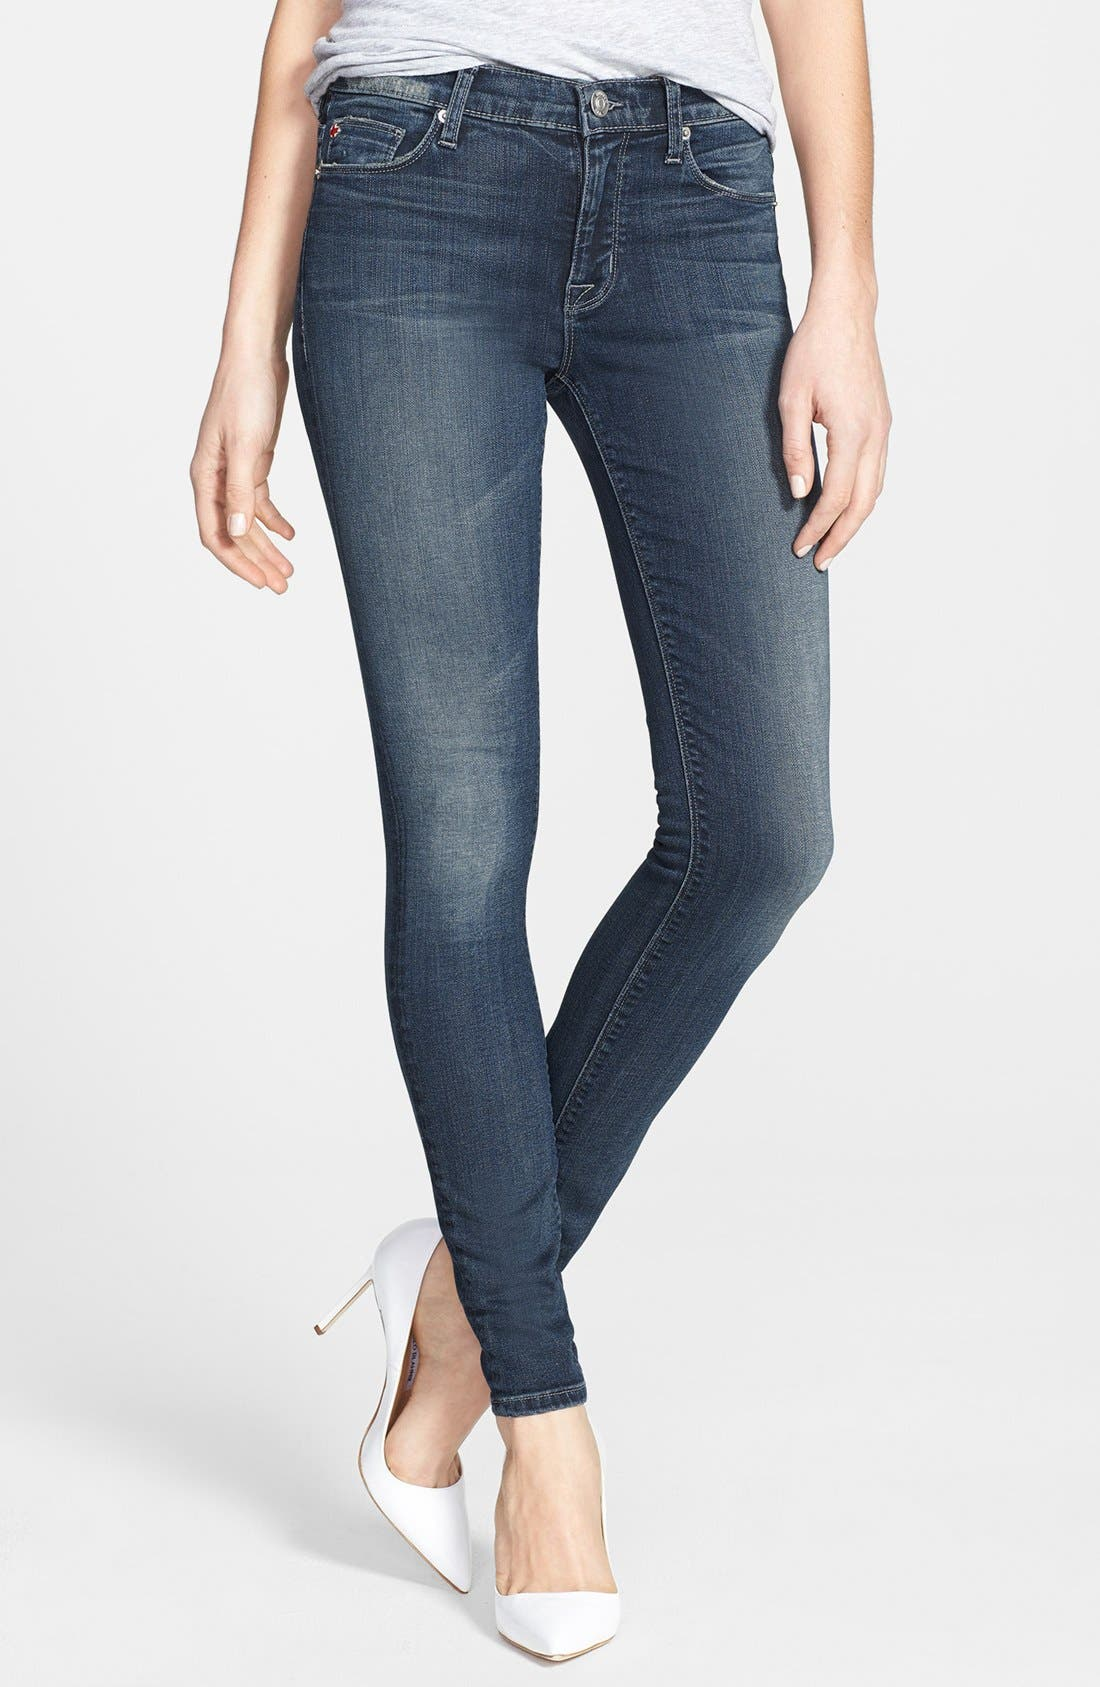 Alternate Image 1 Selected - Hudson Jeans 'Nico' Super Skinny Jeans (Epic Wash)